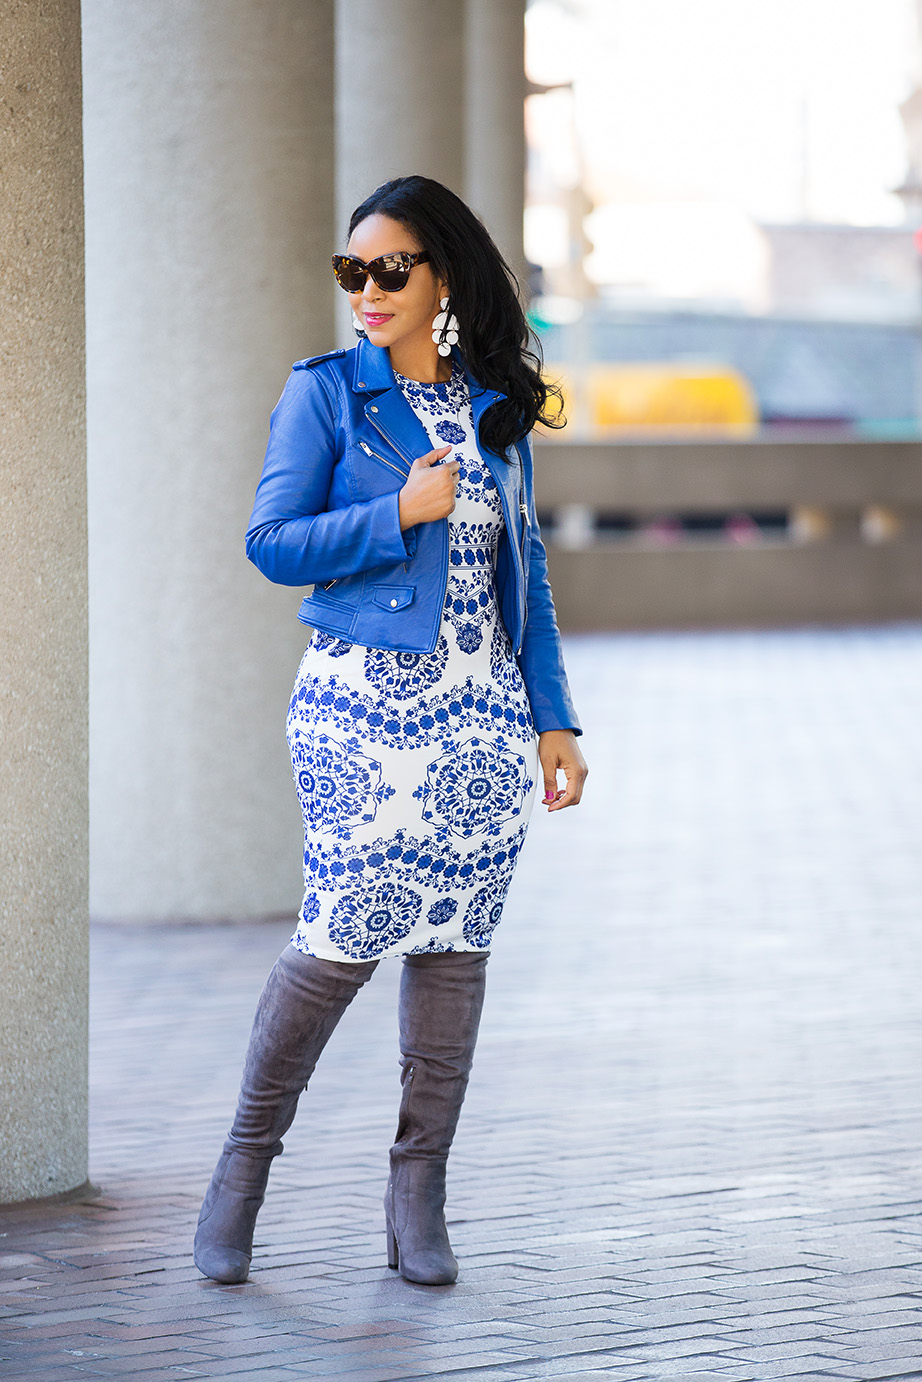 A Cure for Those Winter Blues: Wearing Zara Blue Faux Leather Biker Jacket, SHEIN Porcelain Print Pencil Dress, Forever 21 Grey Suede Over the knee boots, Jack Rabbit Easy Rider Hobo, What's Haute